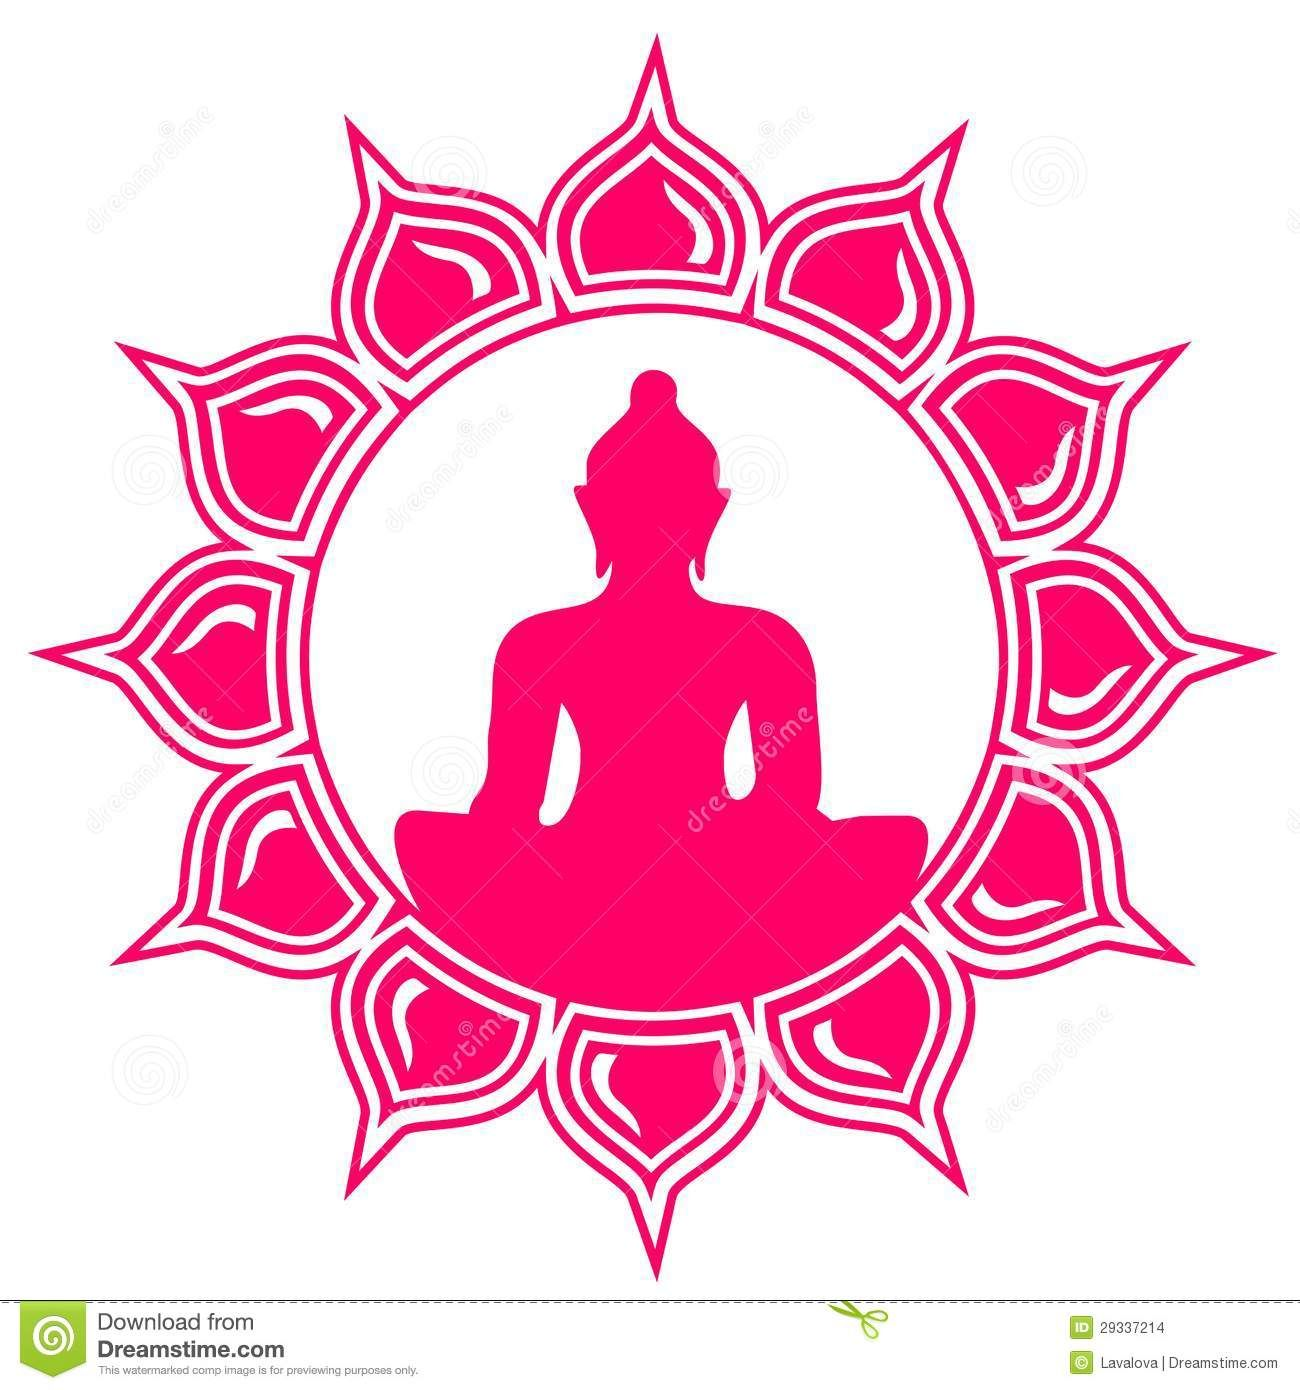 Lotus flowers graphics drawings google search lotus flowers lotus flowers graphics drawings google search izmirmasajfo